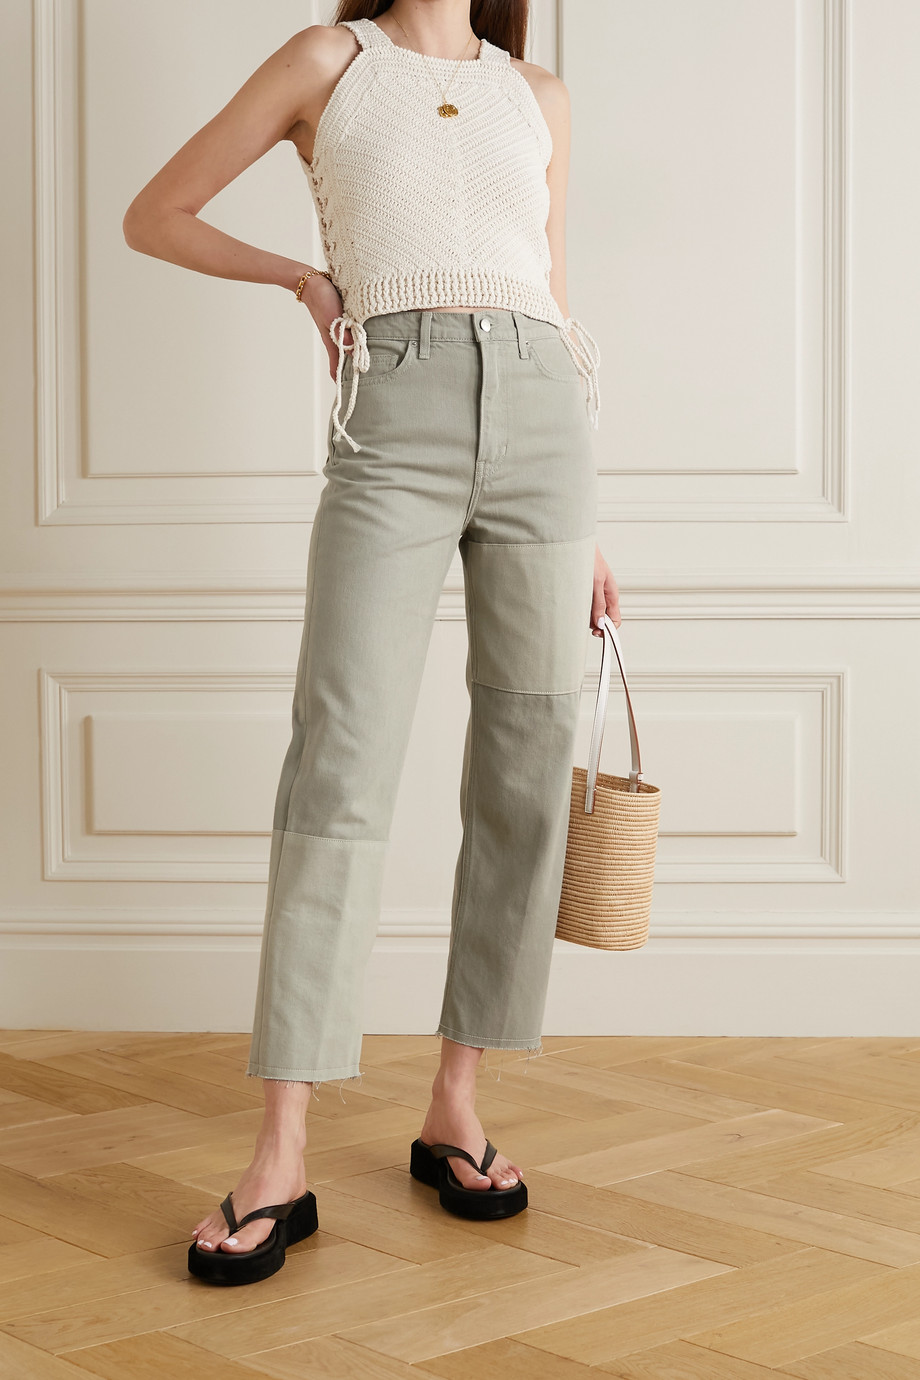 REFORMATION + NET SUSTAIN Ryan paneled organic high-rise straight-leg jeans